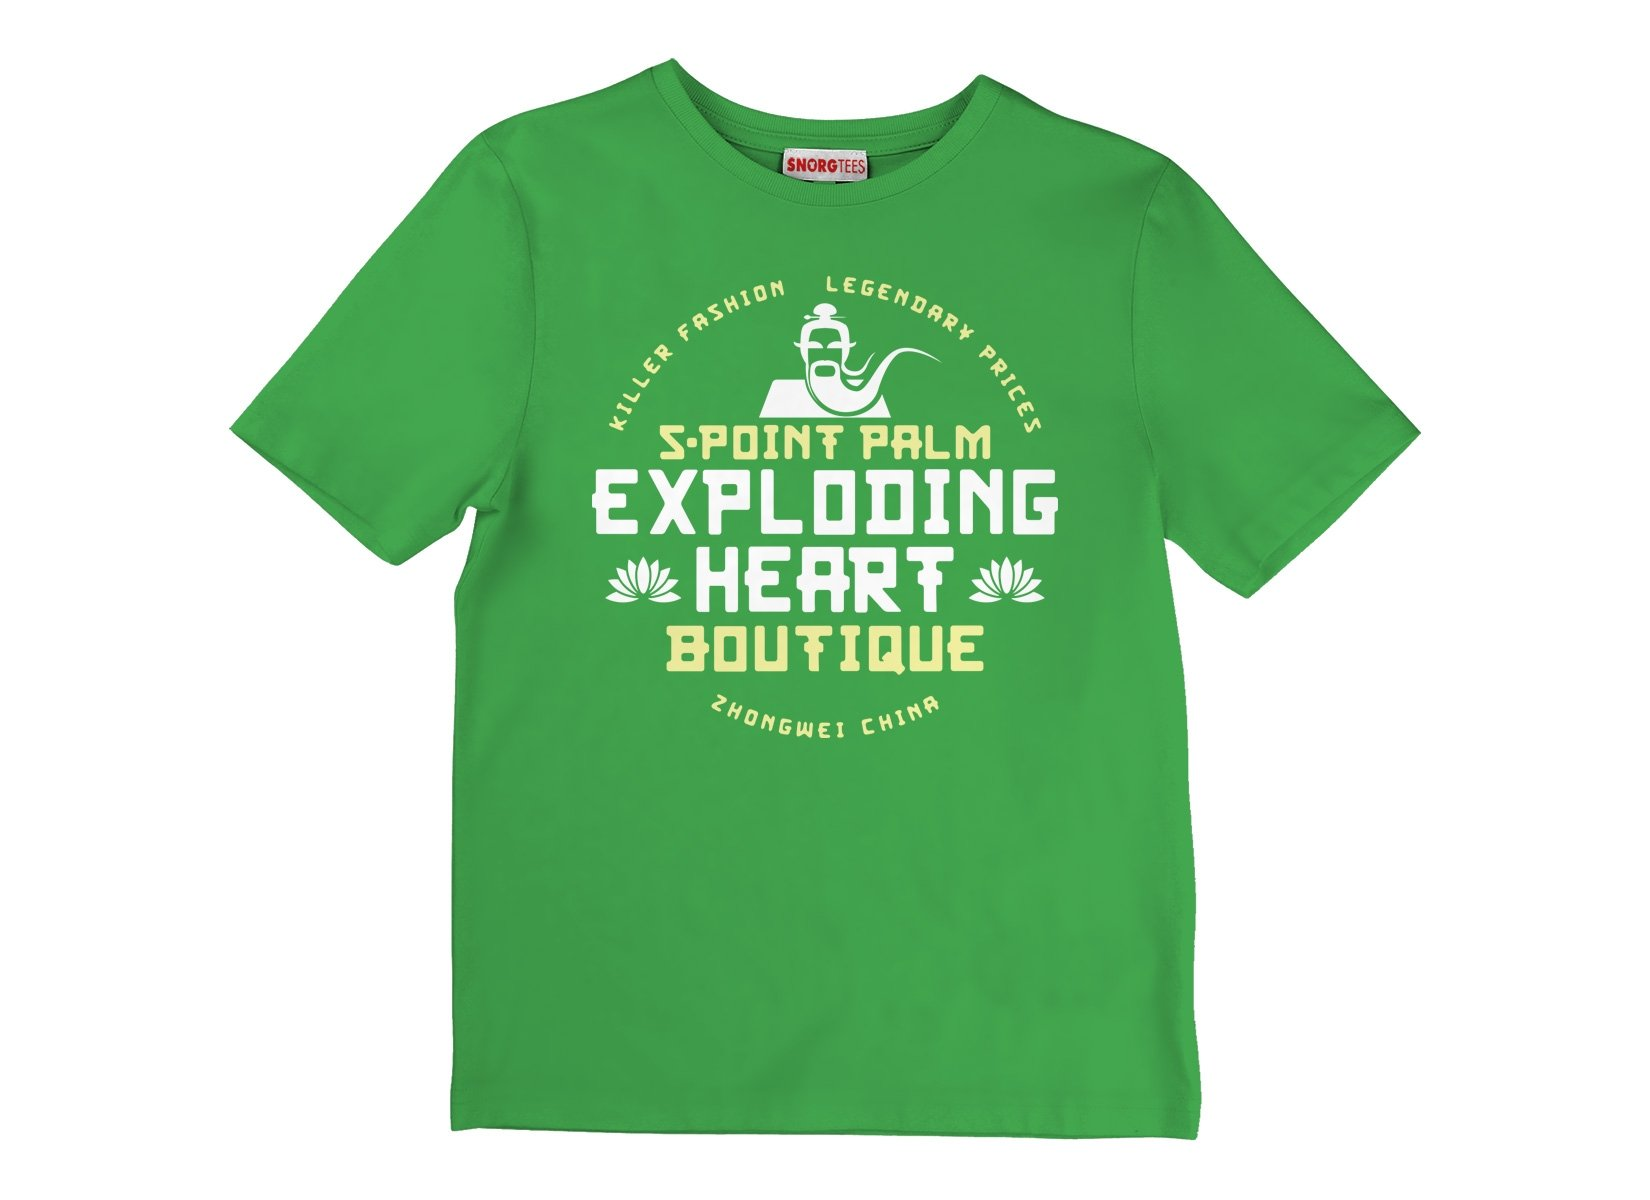 5-Point Palm Exploding Heart Boutique on Kids T-Shirt